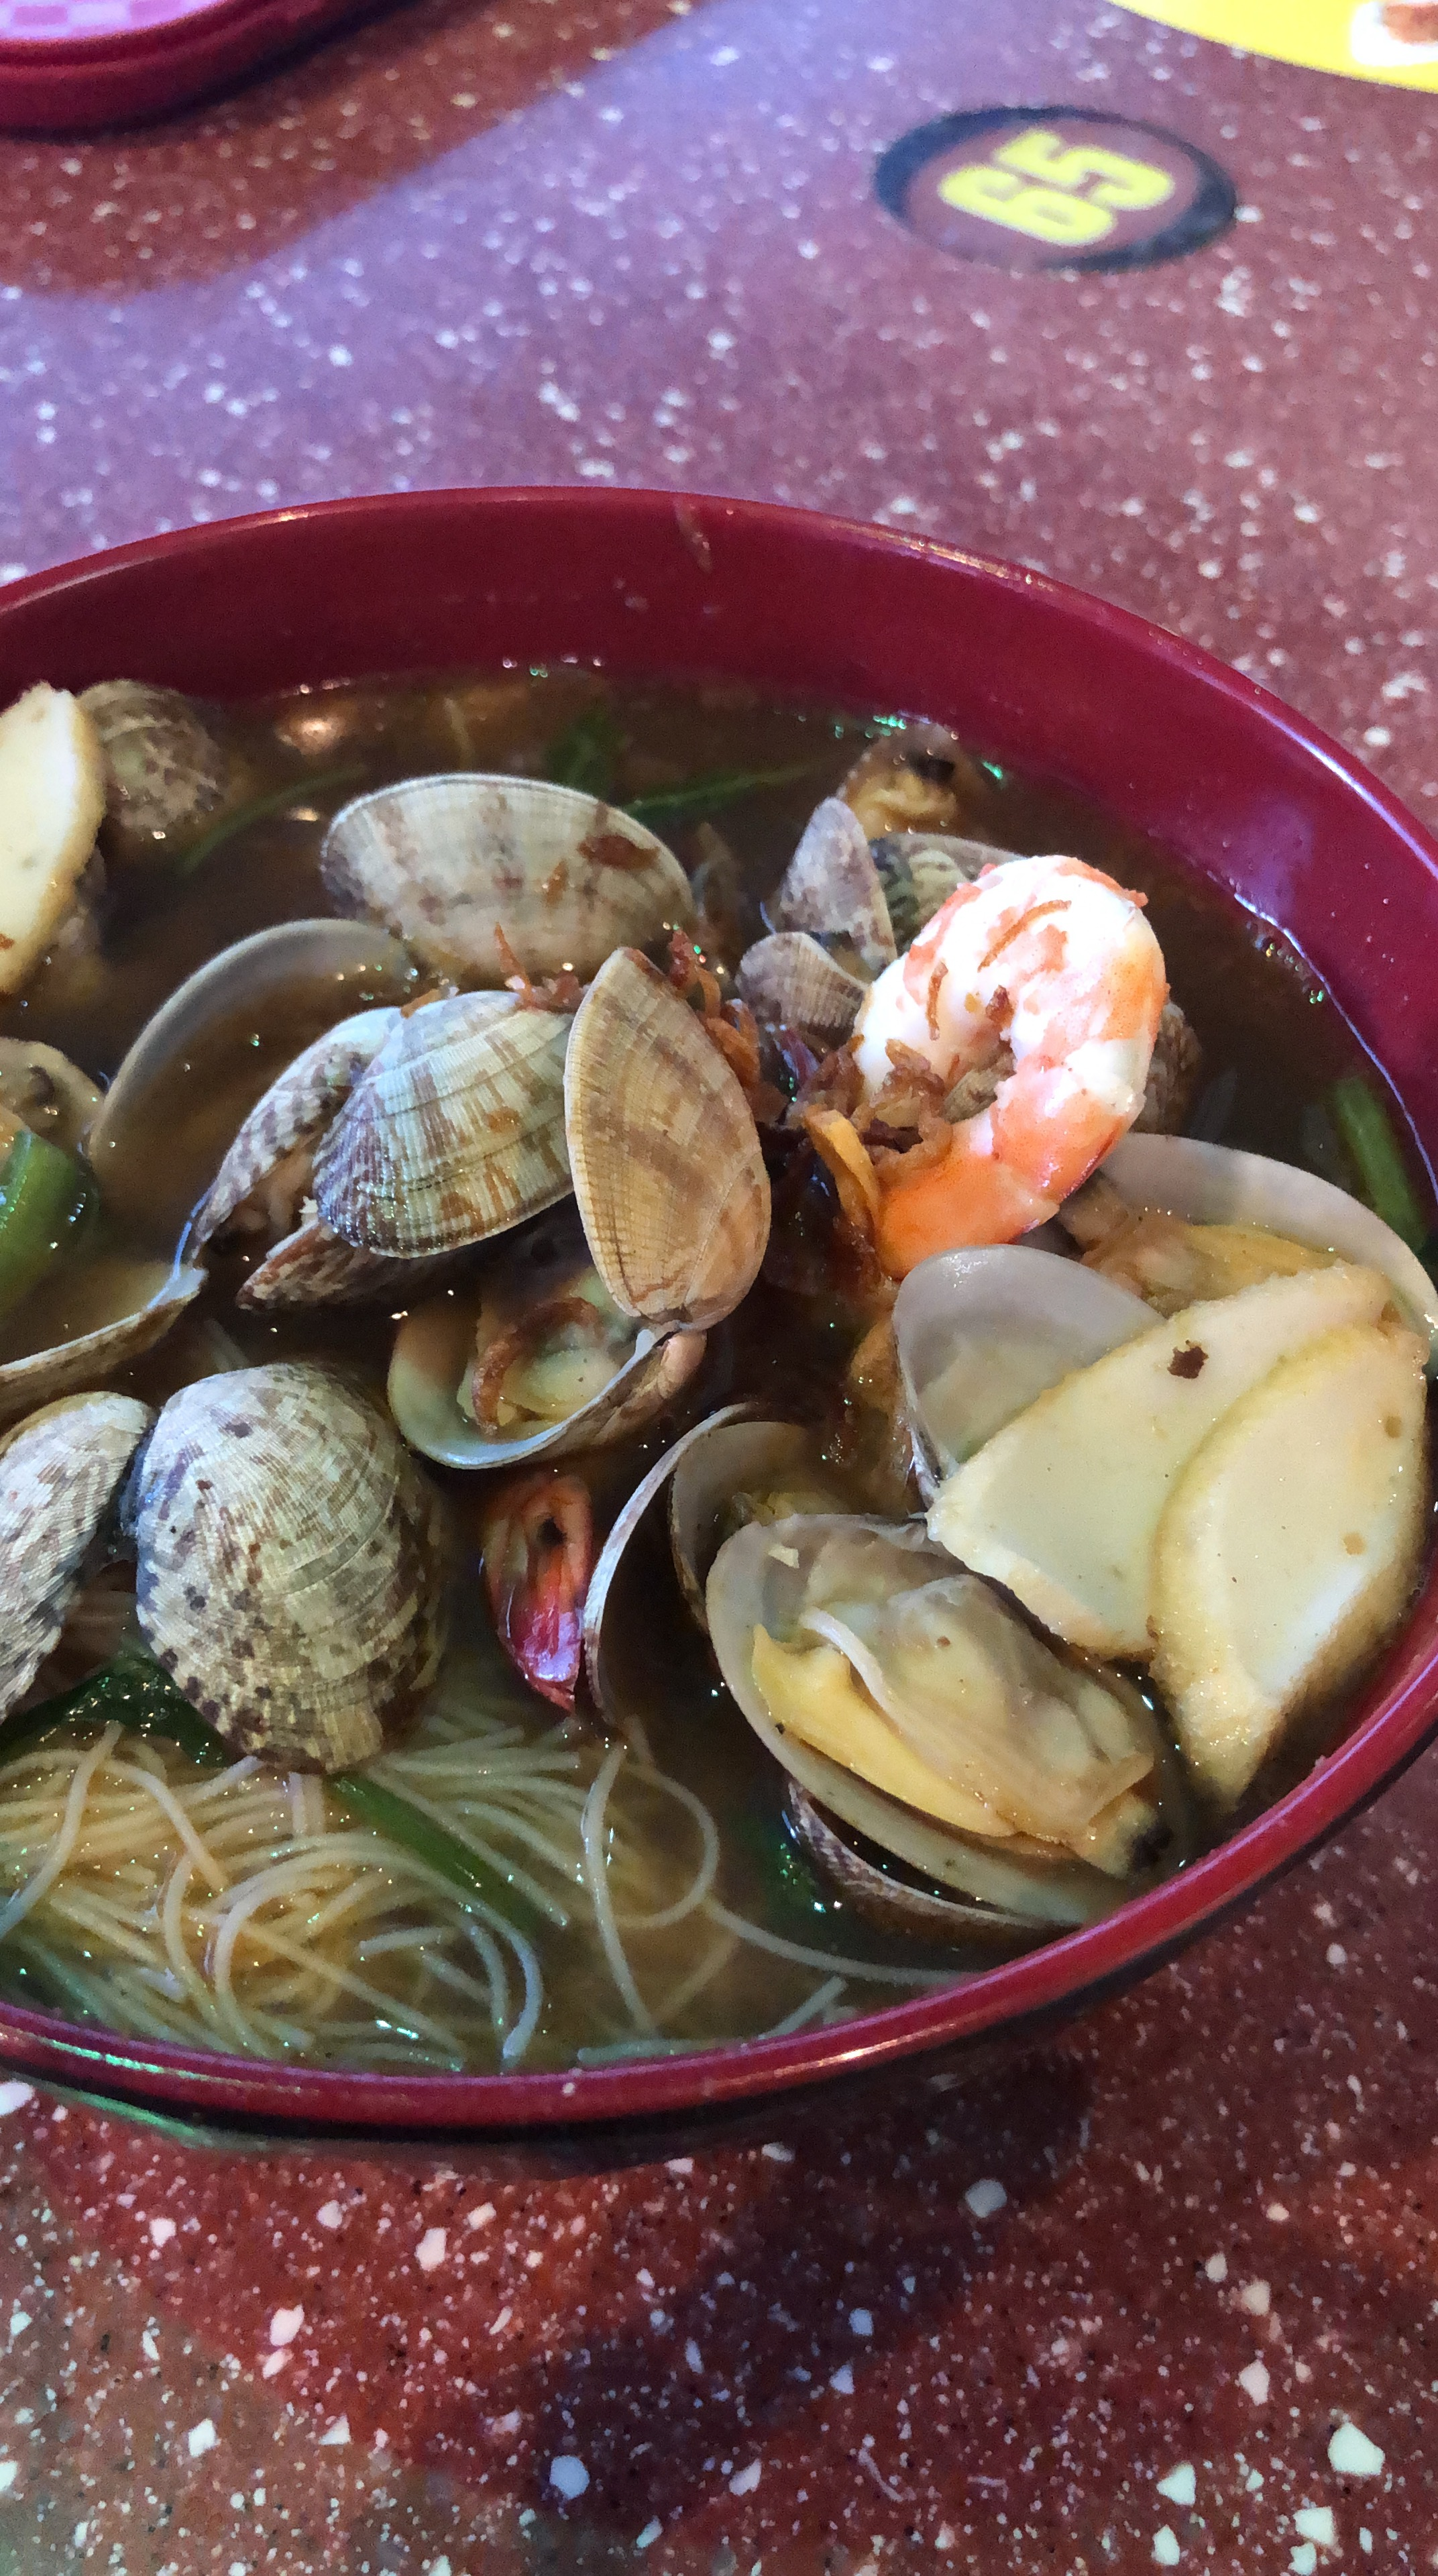 Deannas_Kitchen_Prawn_Noodles_Clams3